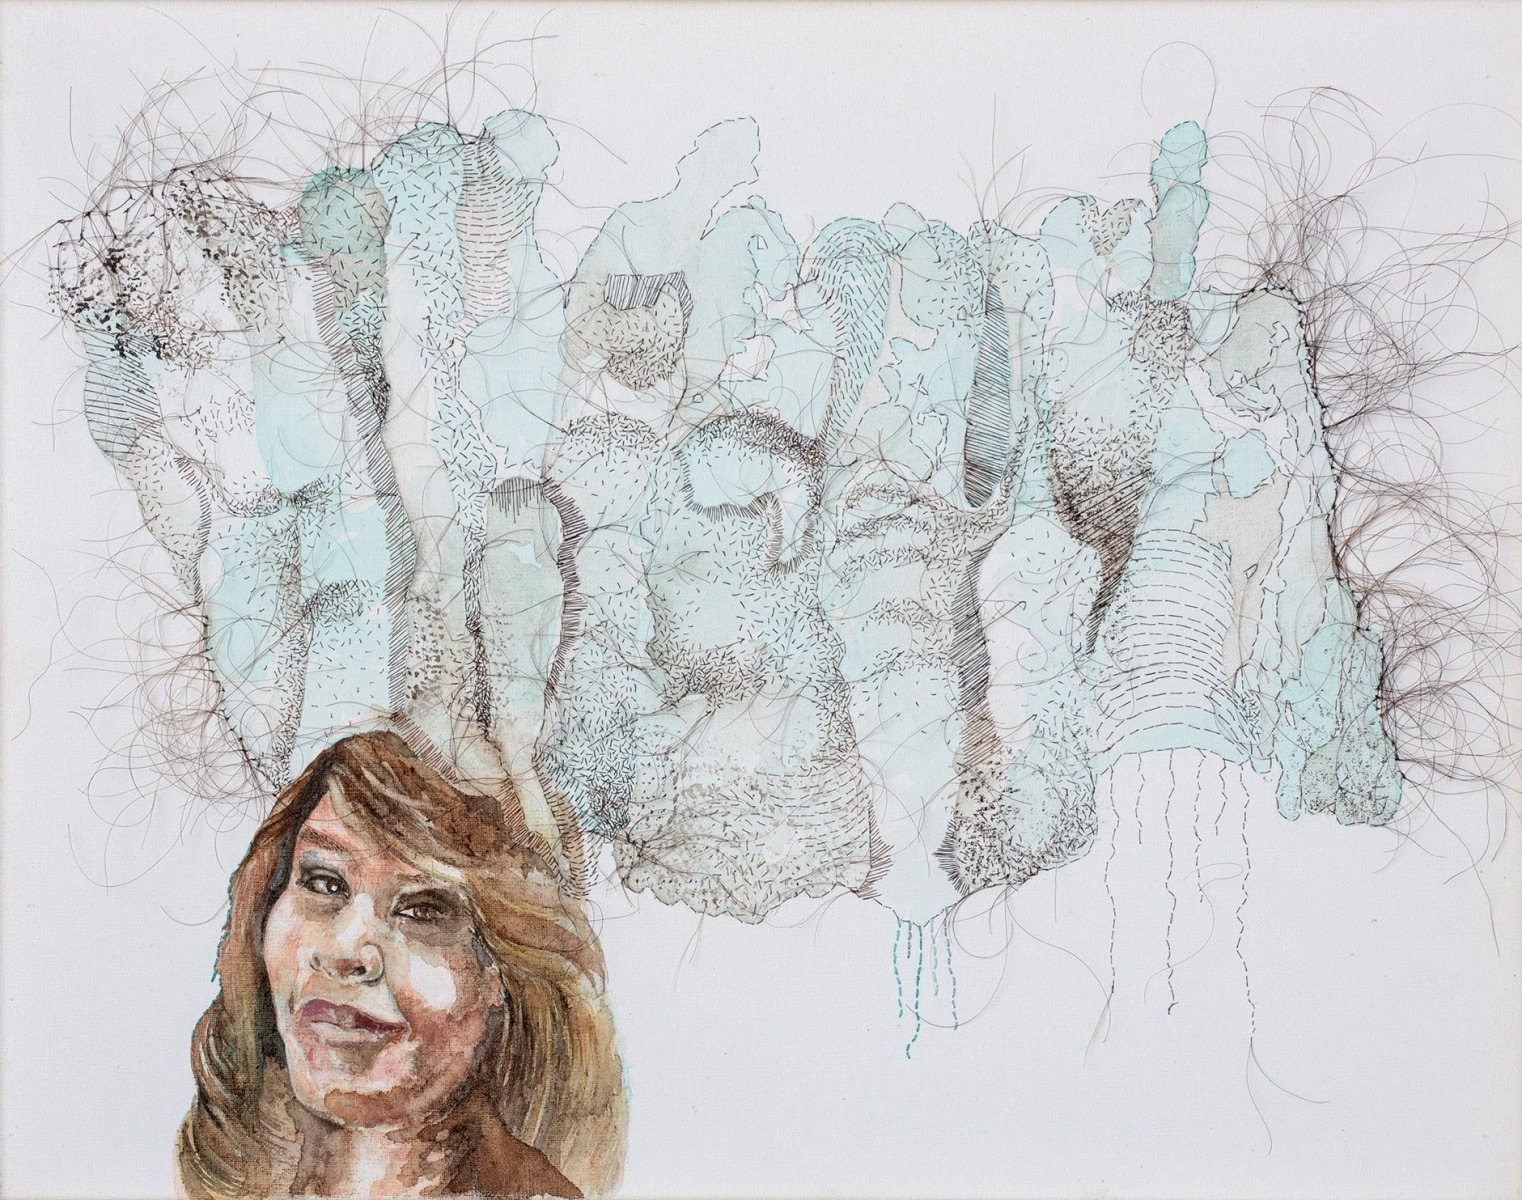 """I'm the Wilderness, I'm the White Noise, 2016, hand-sewn human hair & watercolor on canvas, 12"""" x 15"""""""